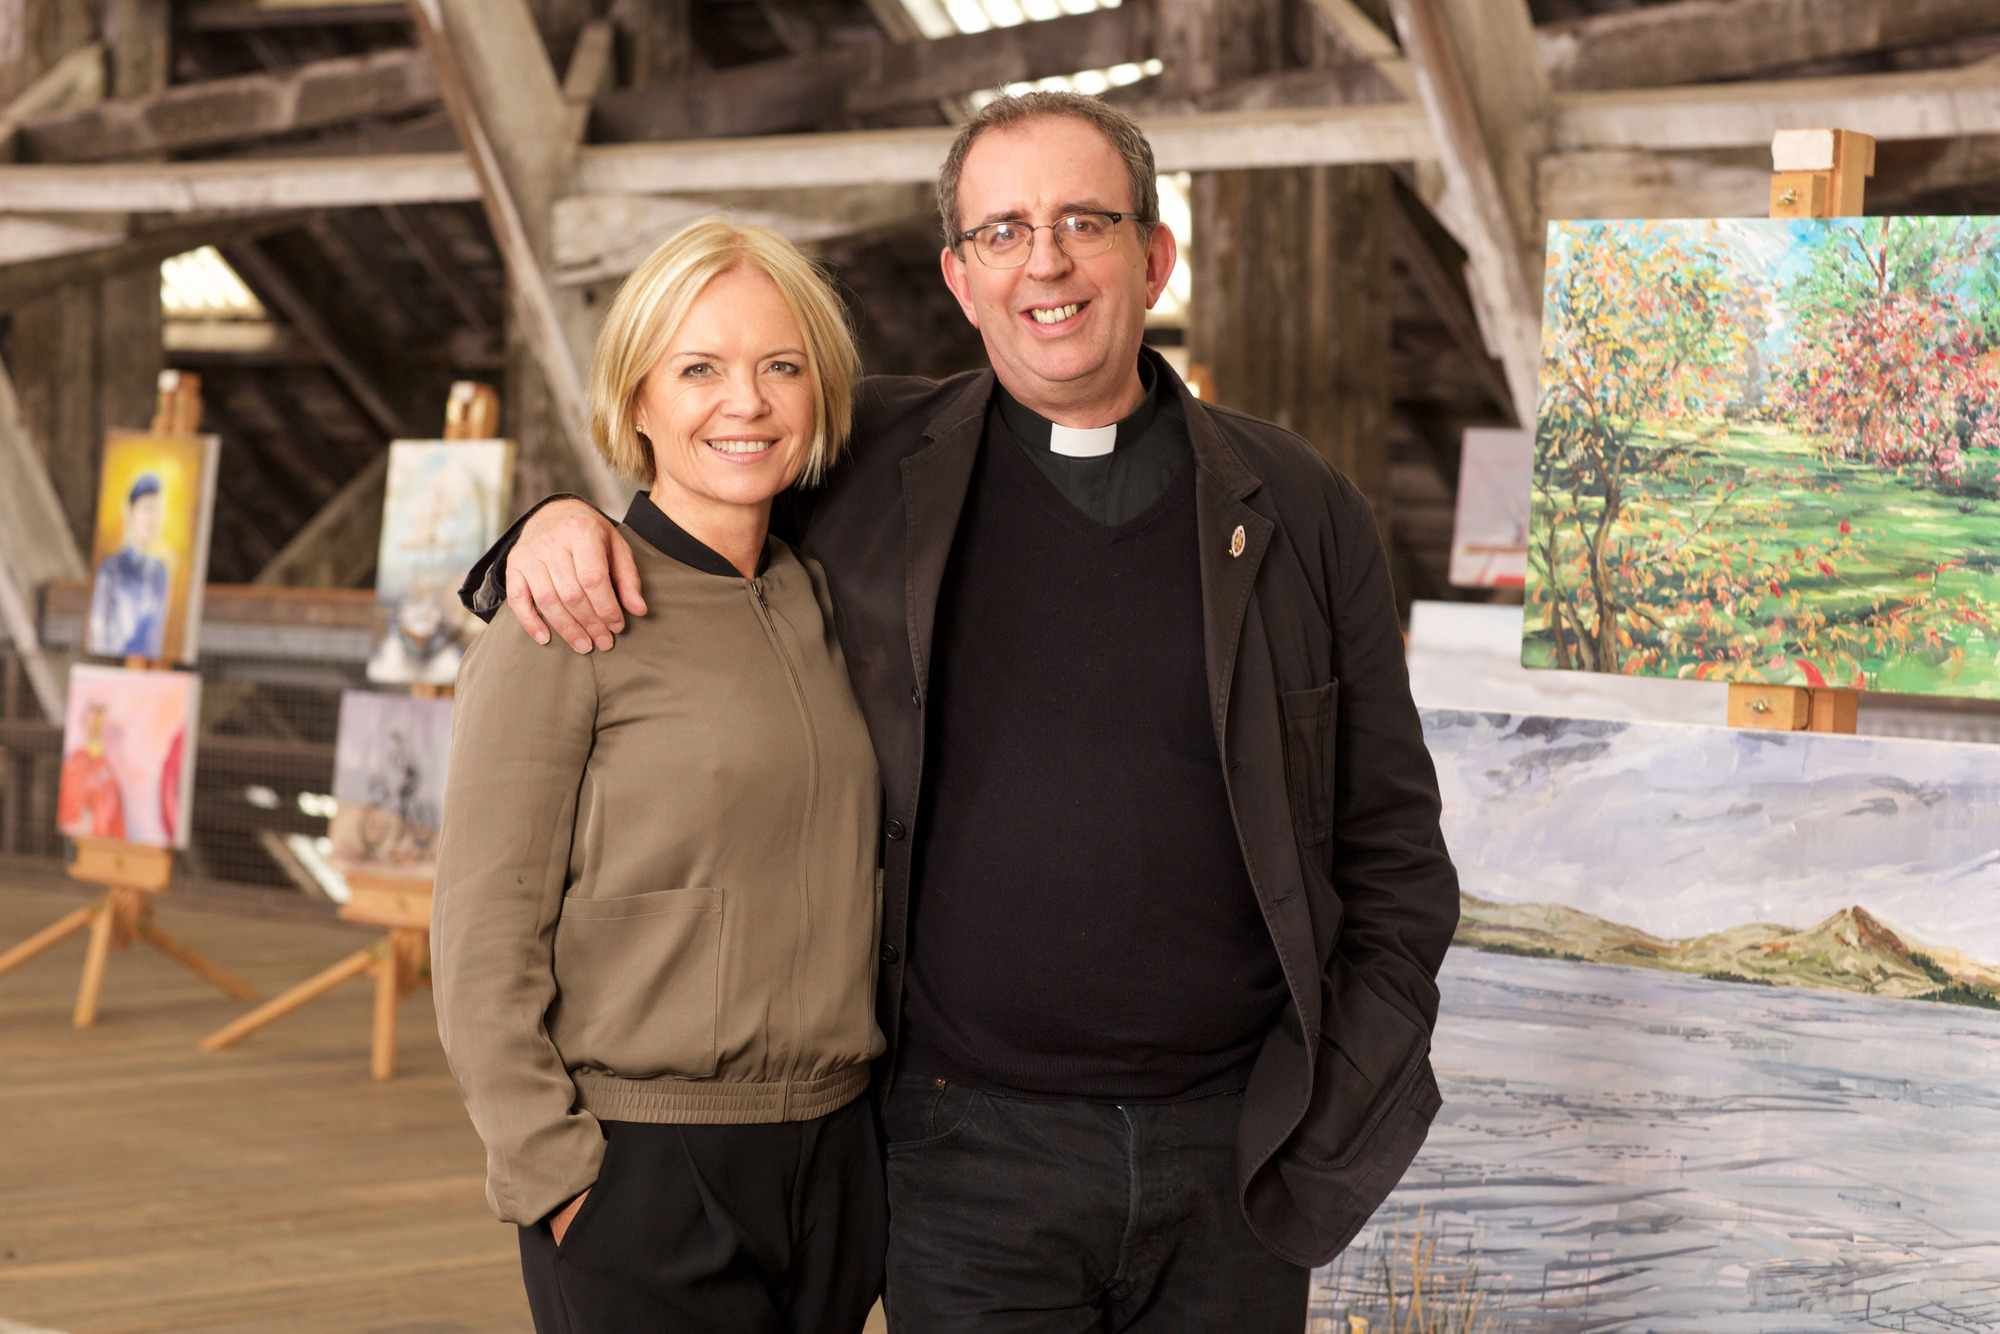 Programme Name: The Big Painting Challenge S3 - TX: n/a - Episode: The Big Painting Challenge S3 - Generics (No. n/a) - Picture Shows: Mariella & Richard (presenters)   - (C) BBC - Photographer: Alan Peebles  BBC, TL